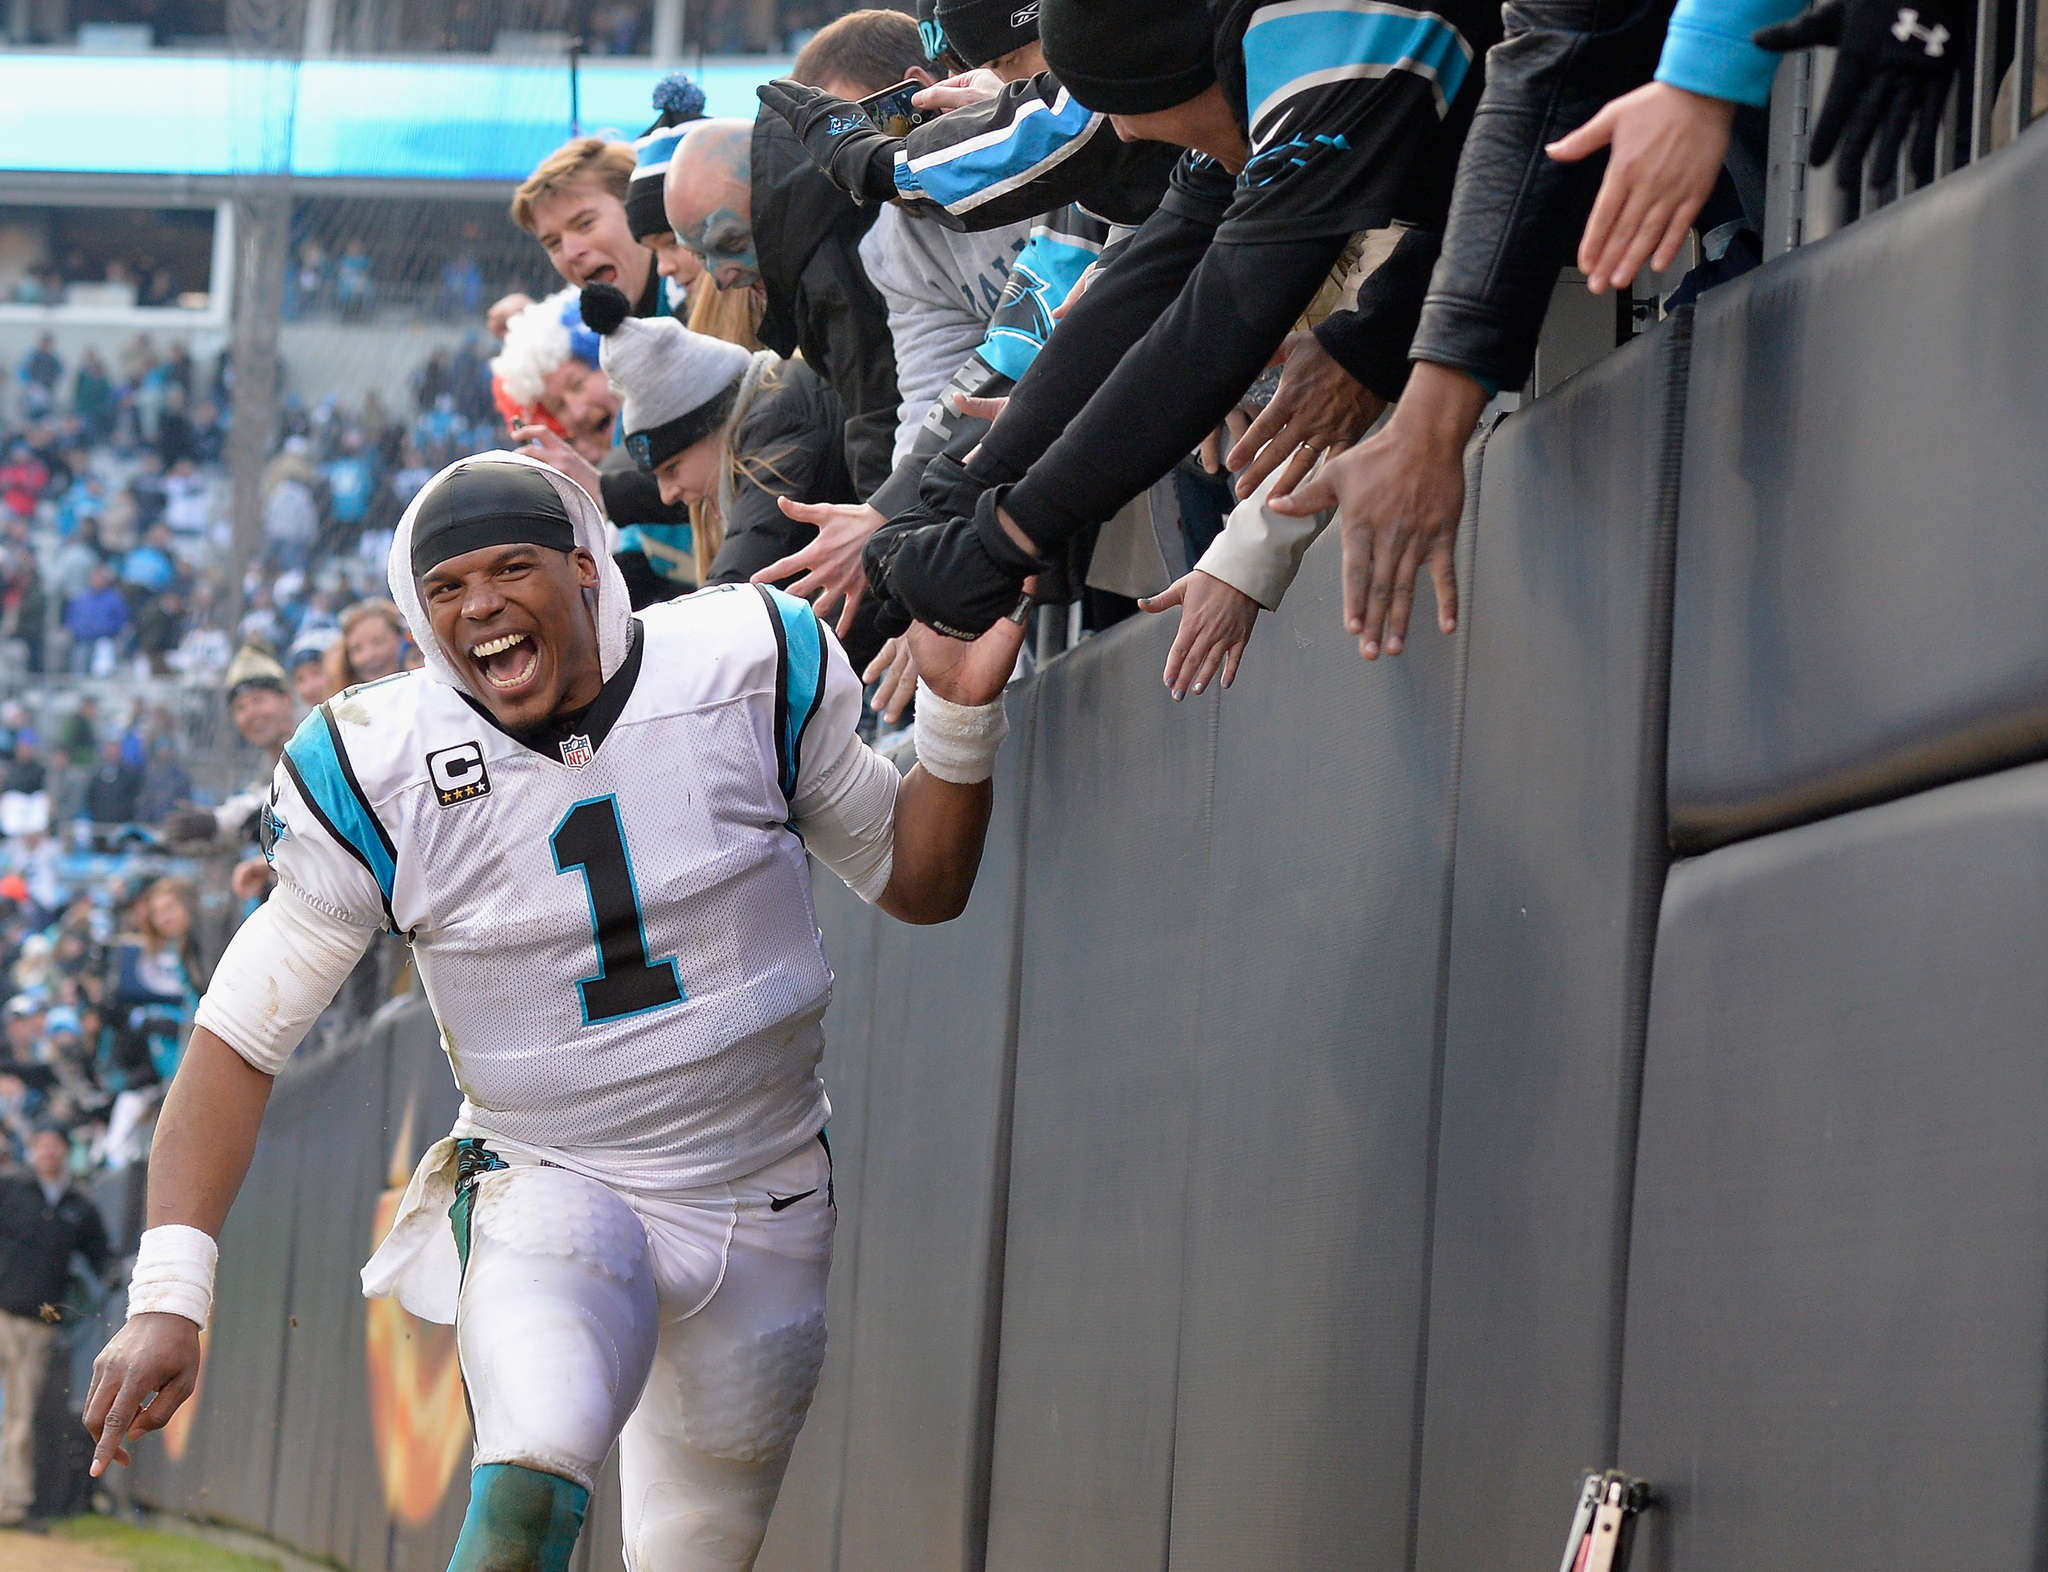 Cam Newtown celebrates with fans after leading Panthers to NFC Championship Game. ASSOCIATED PRESS